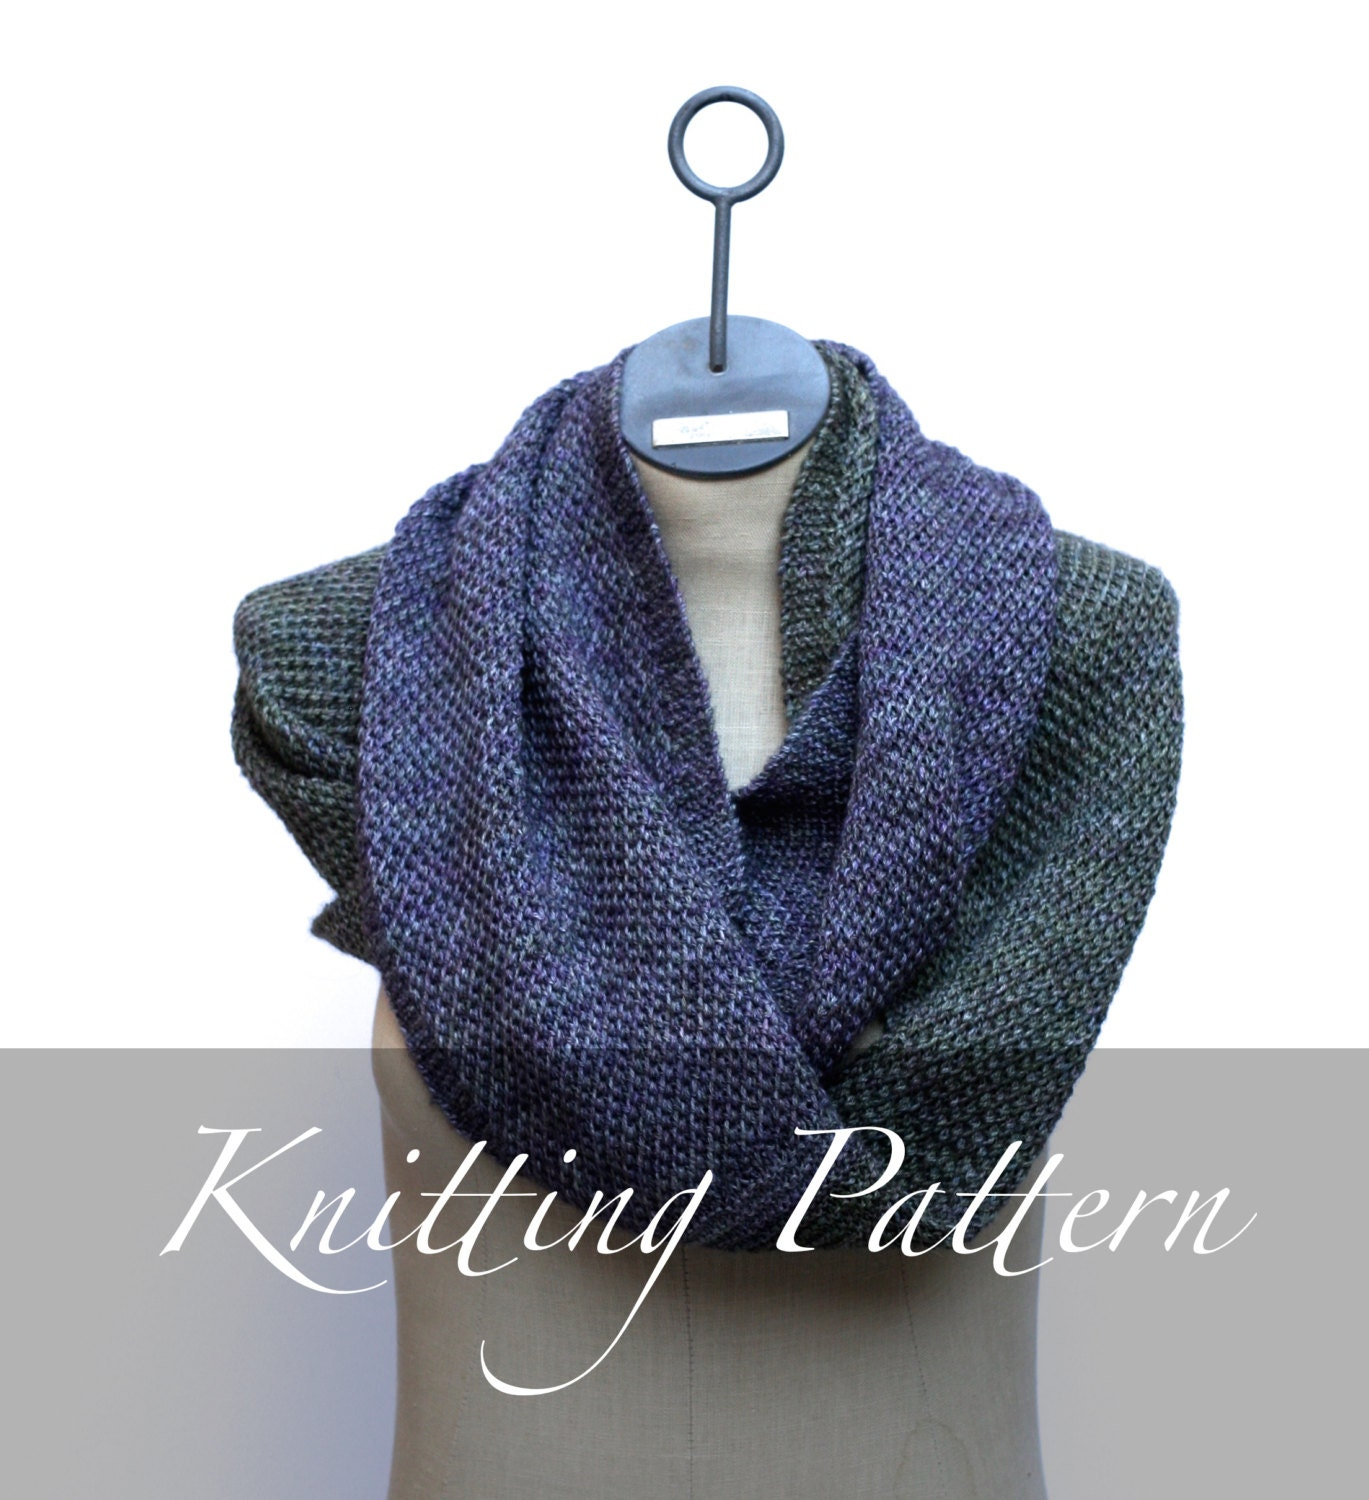 Knitting Pattern - The Ombré Cowl - Scarf Pattern - Infinity Scarf ...